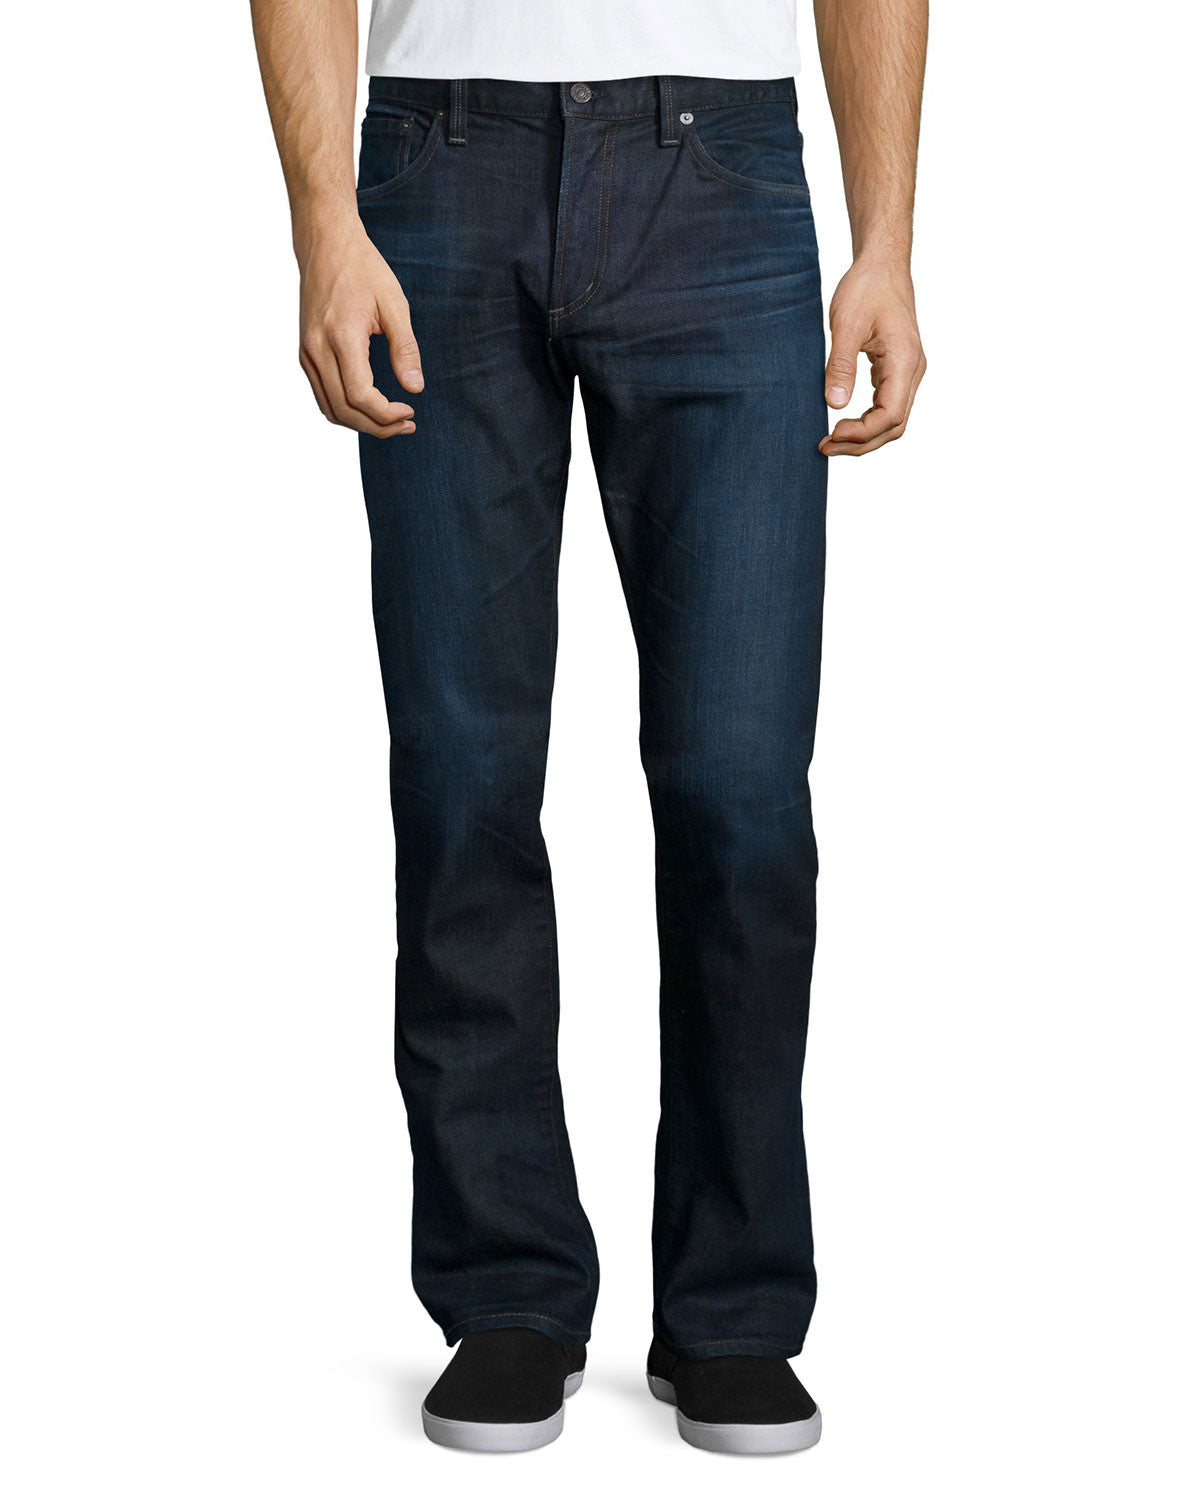 Citizens of Humanity Core Slim Jeans in Huron Wash 6060-596